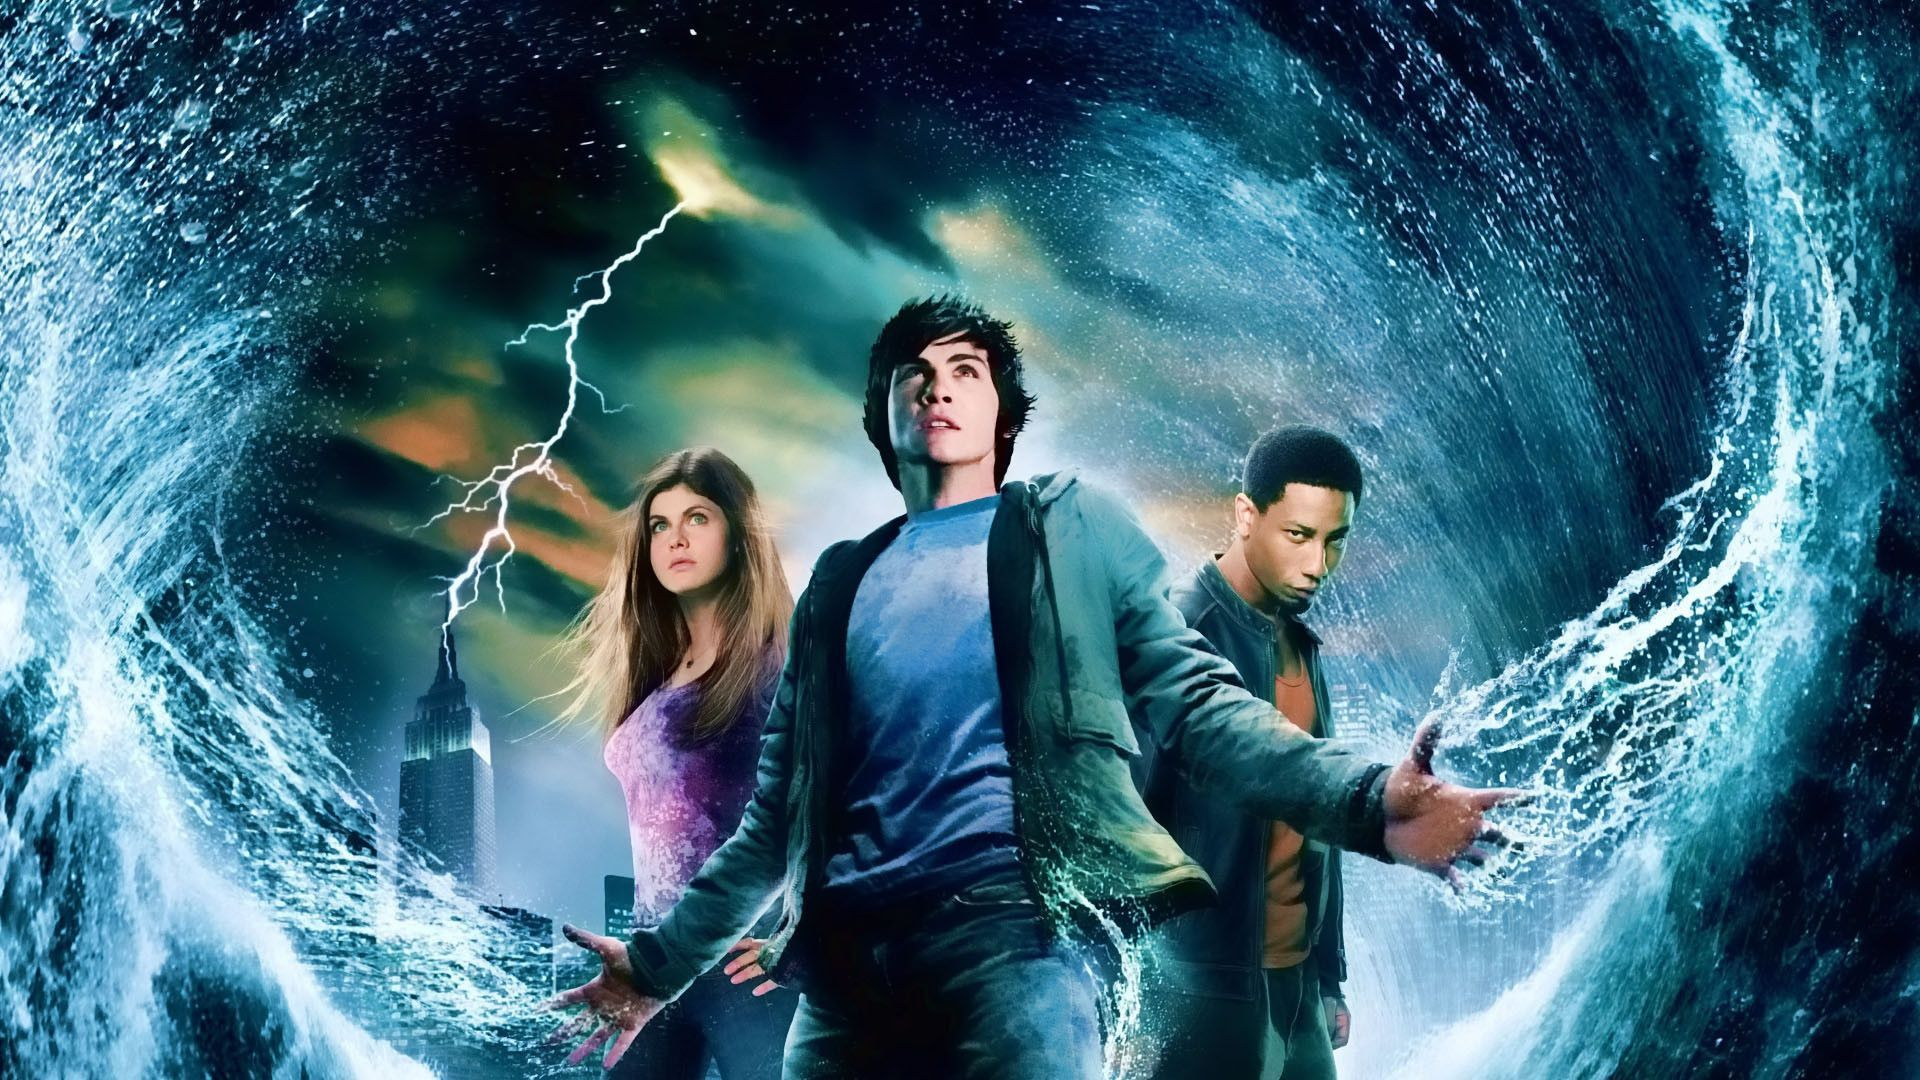 Images about percy jackson on pinterest 19201080 percy jackson images about percy jackson on pinterest 19201080 percy jackson wallpaper adorable wallpapers voltagebd Images